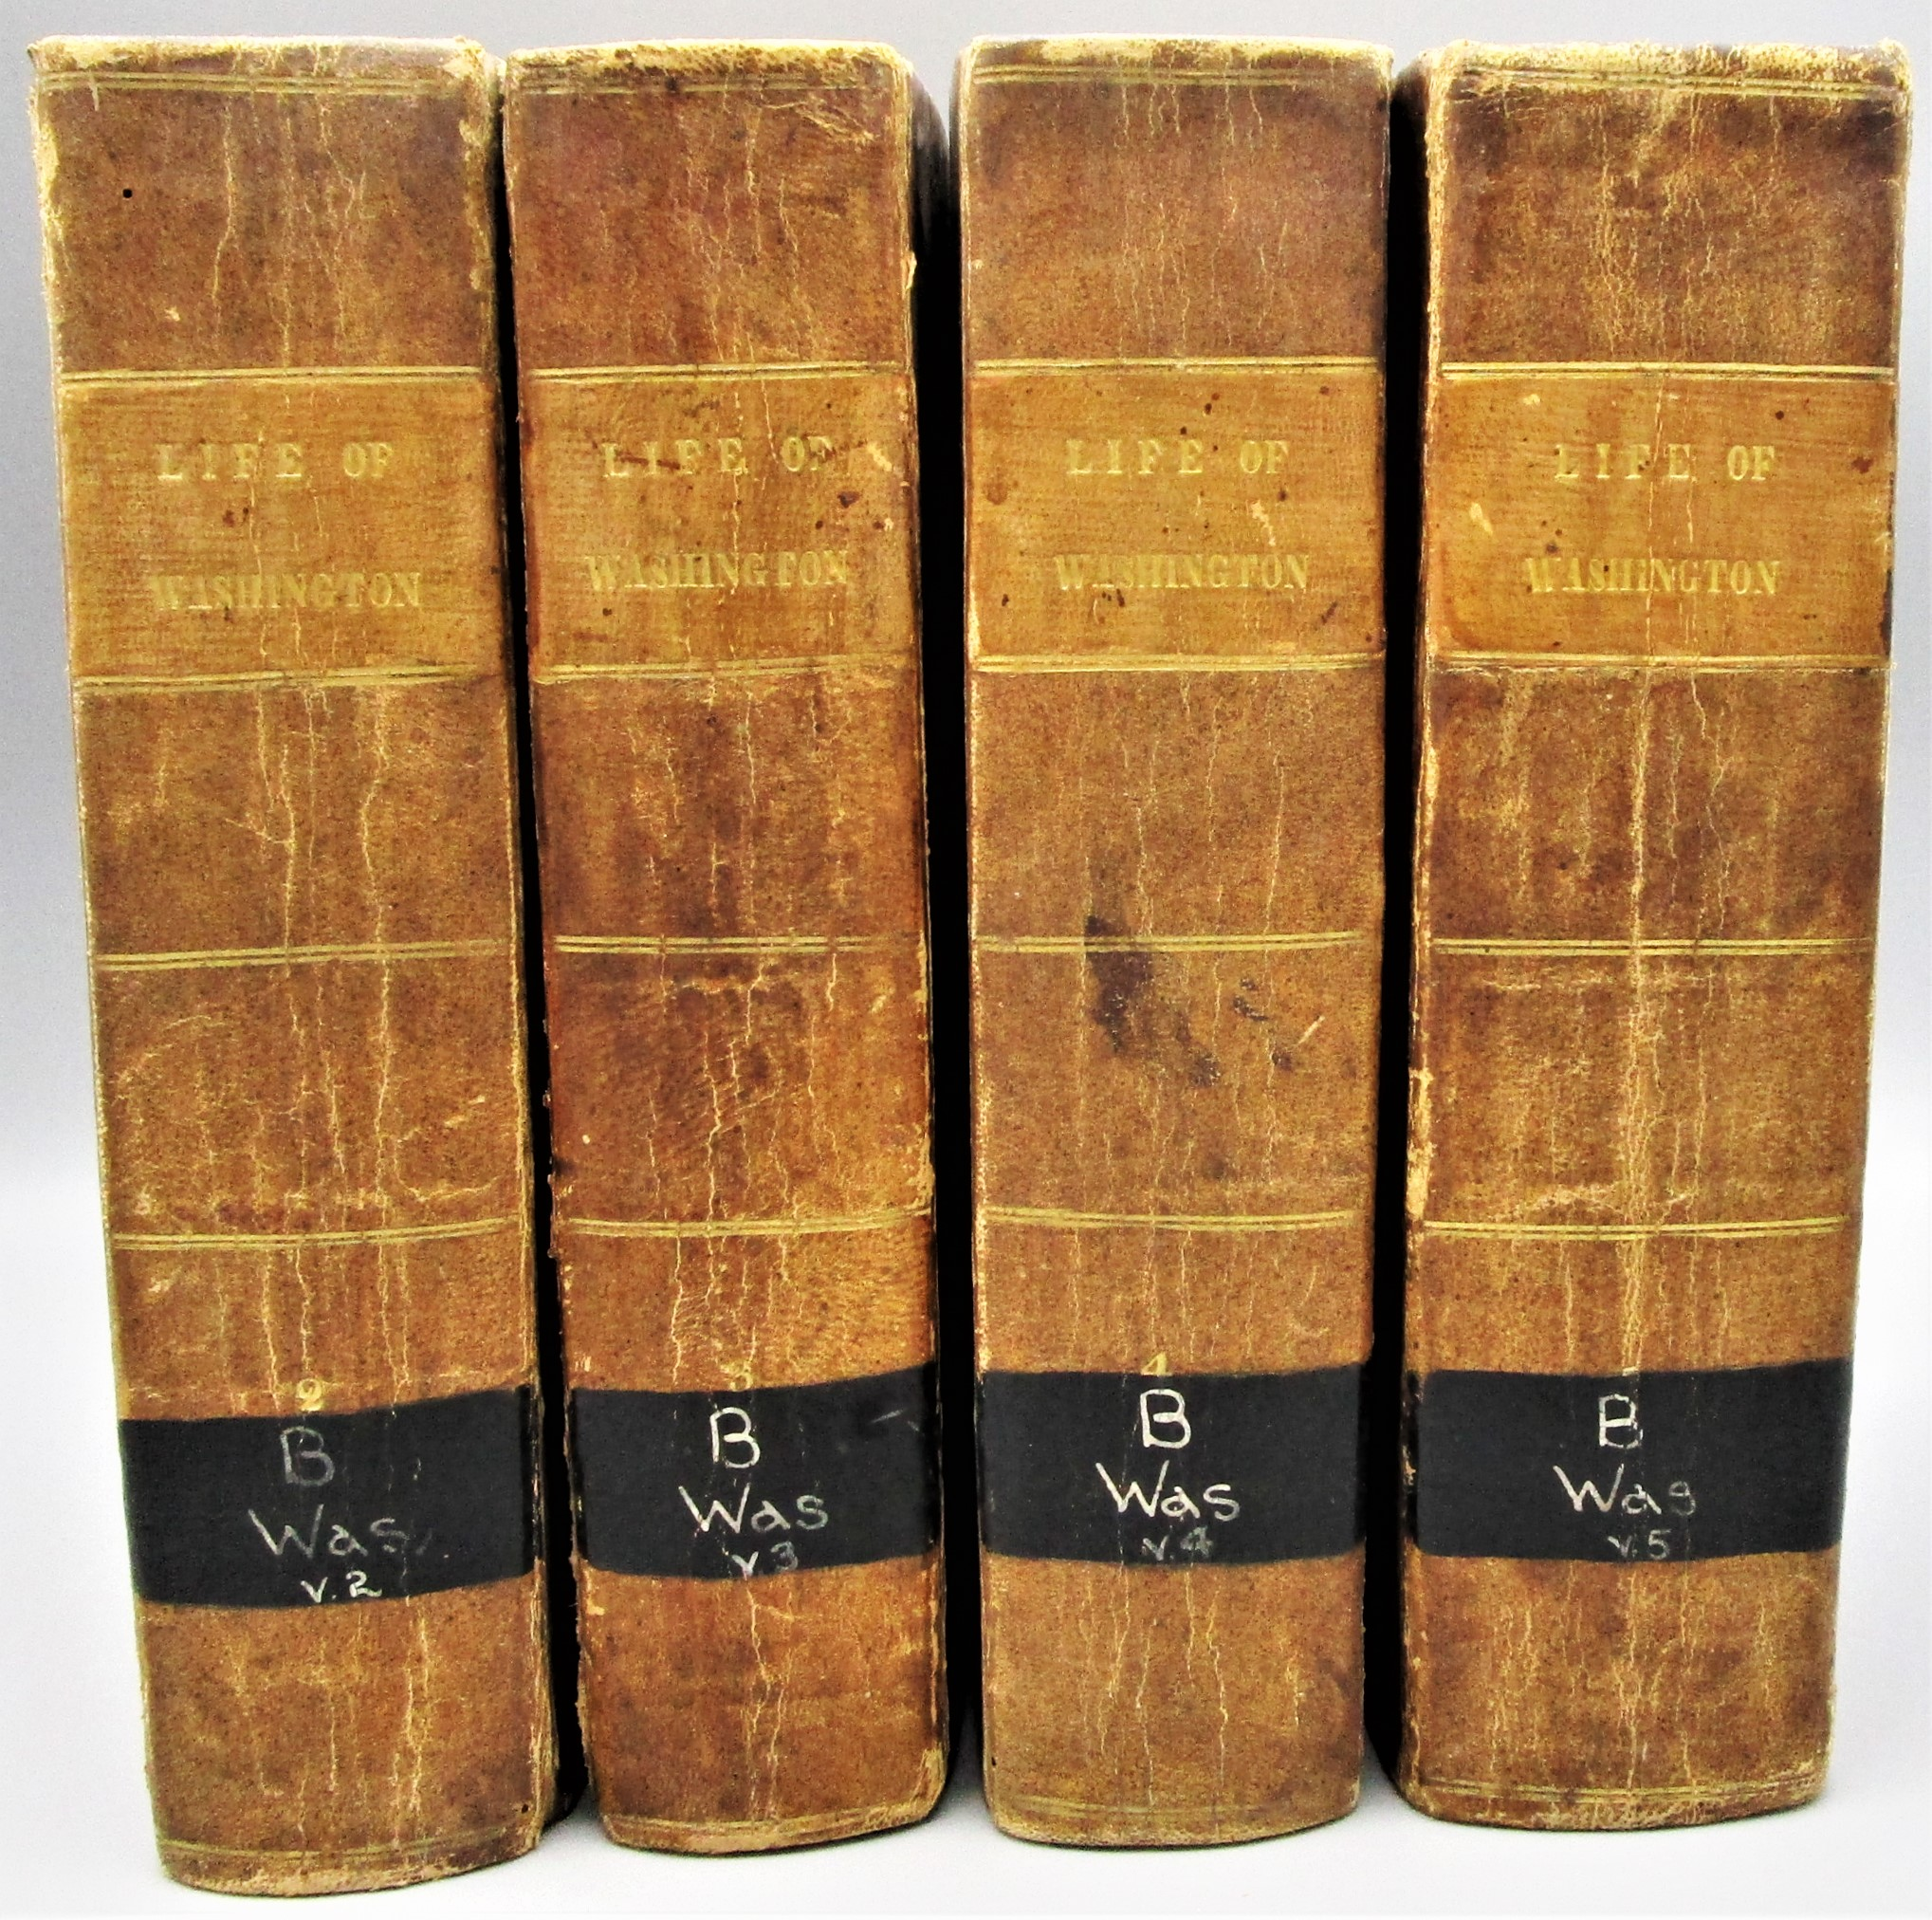 THE LIFE OF GEORGE WASHINGTON, by John Marshall - 1804-7 [1st Ed, Vols #2-5]